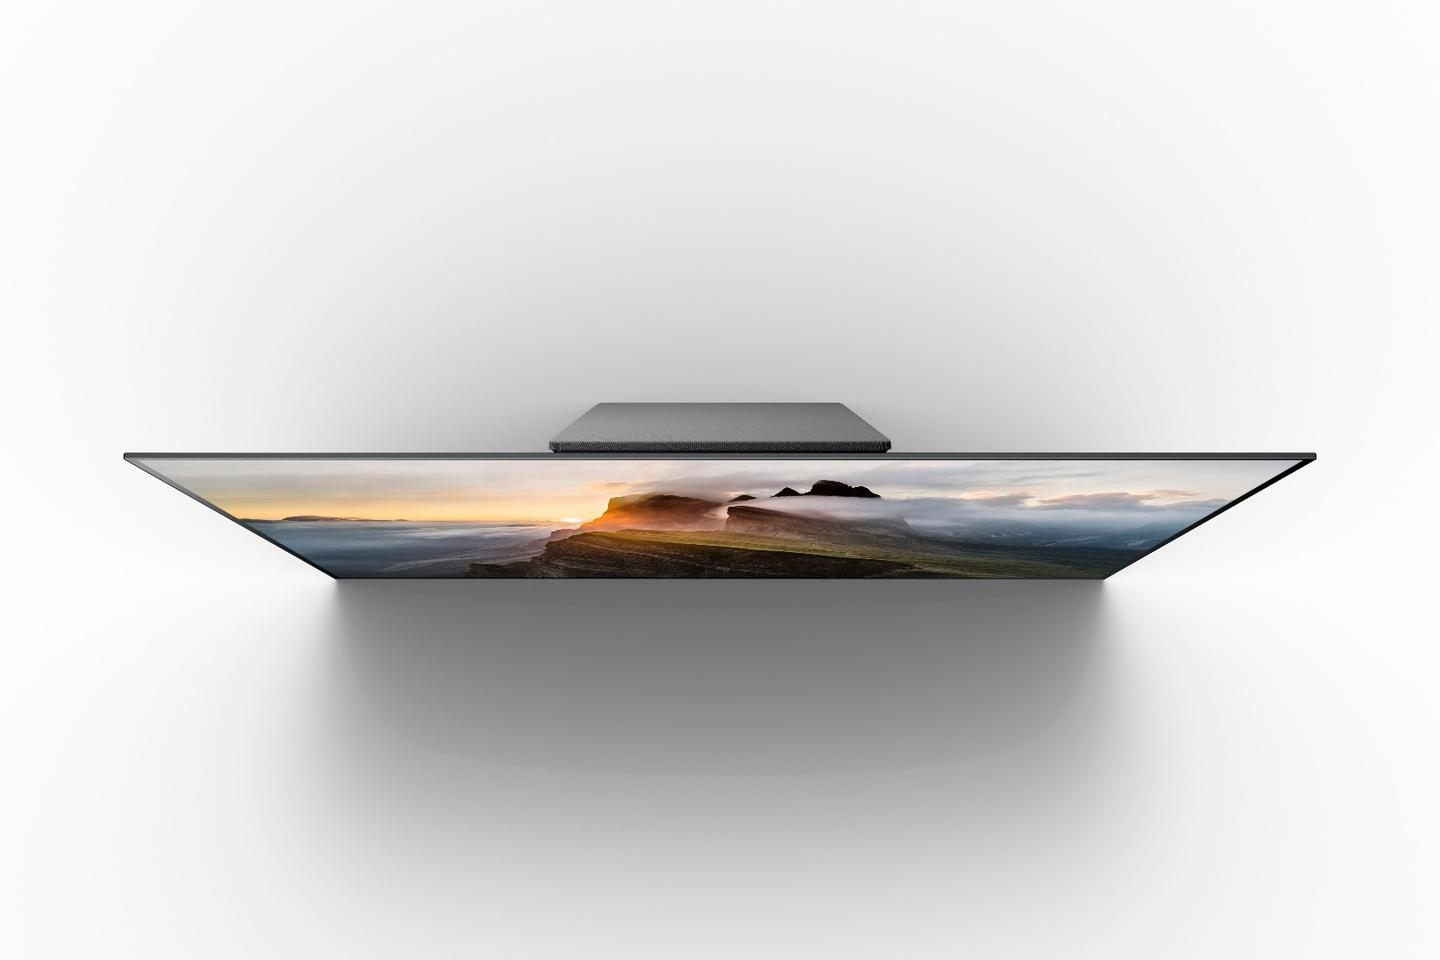 Sony's new flagship A1E Bravia OLED Series boasts a world-first Acoustic Surface sound system